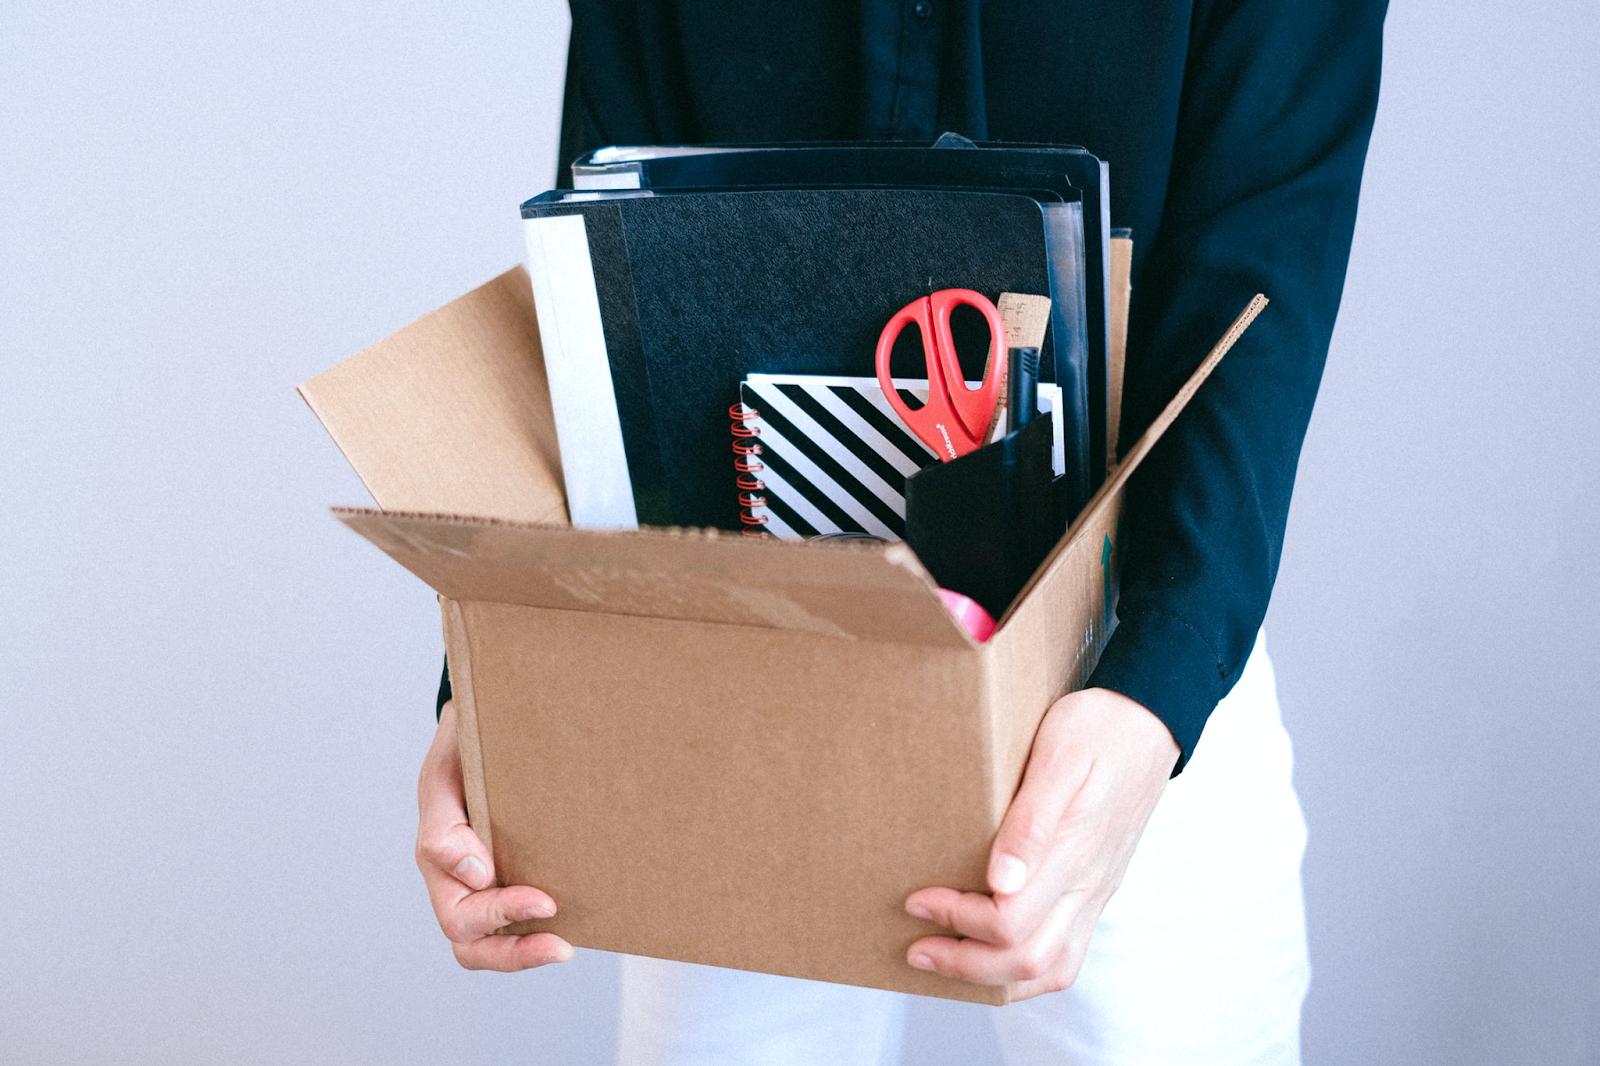 An image of a woman carrying a cardboard box full of office supplies, including a notebook, binders, and a pencil cup.